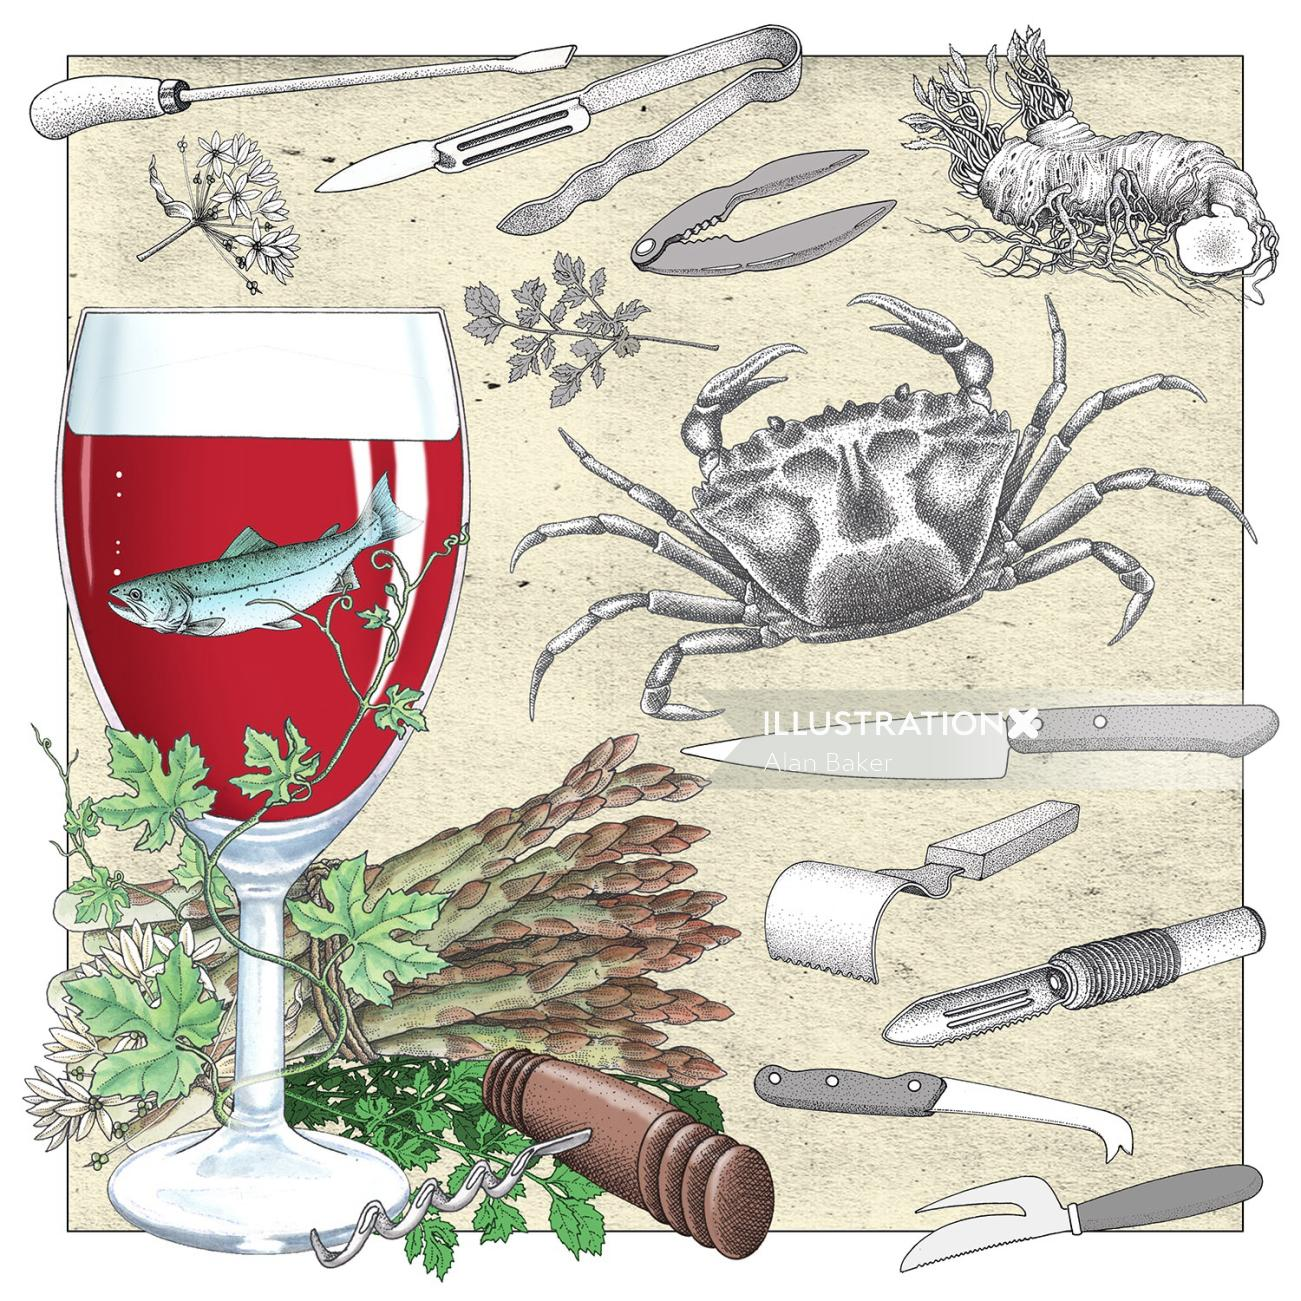 Wine and Seafood illustration by Alan Baker